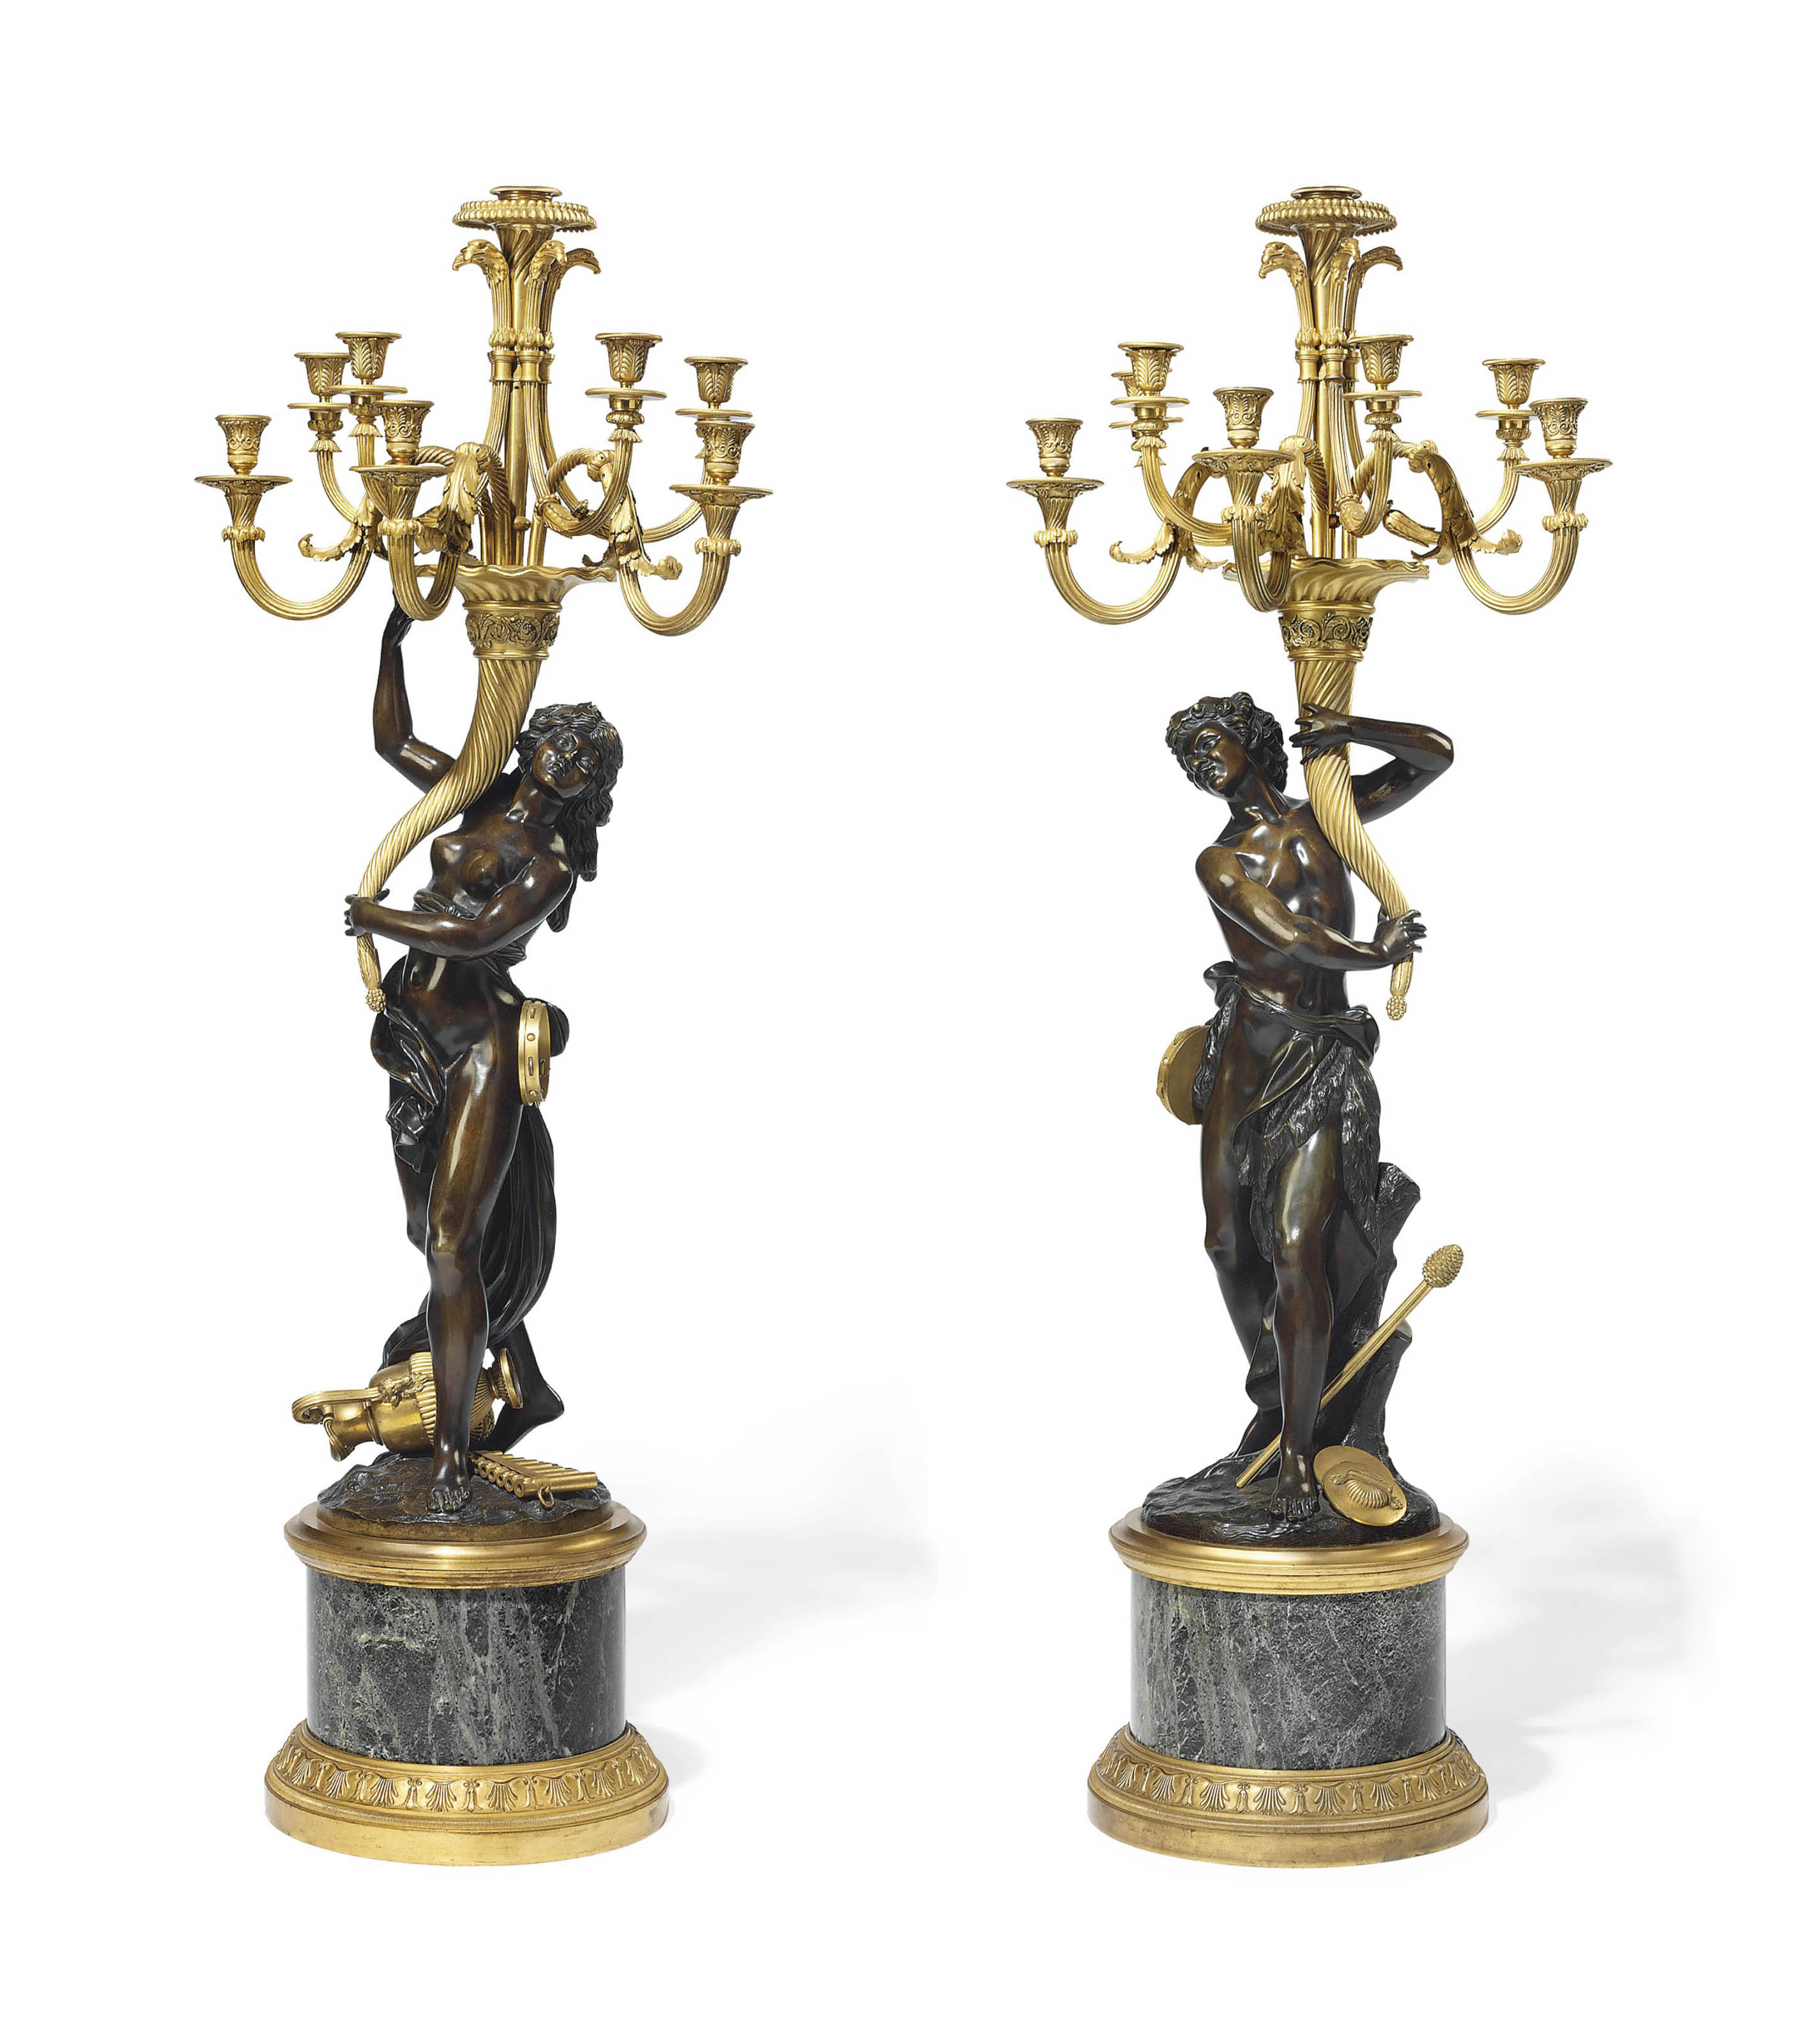 A PAIR OF LARGE FRENCH ORMOLU, PATINATED BRONZE AND MARBLE EIGHT-LIGHT FIGURAL CANDELABRA